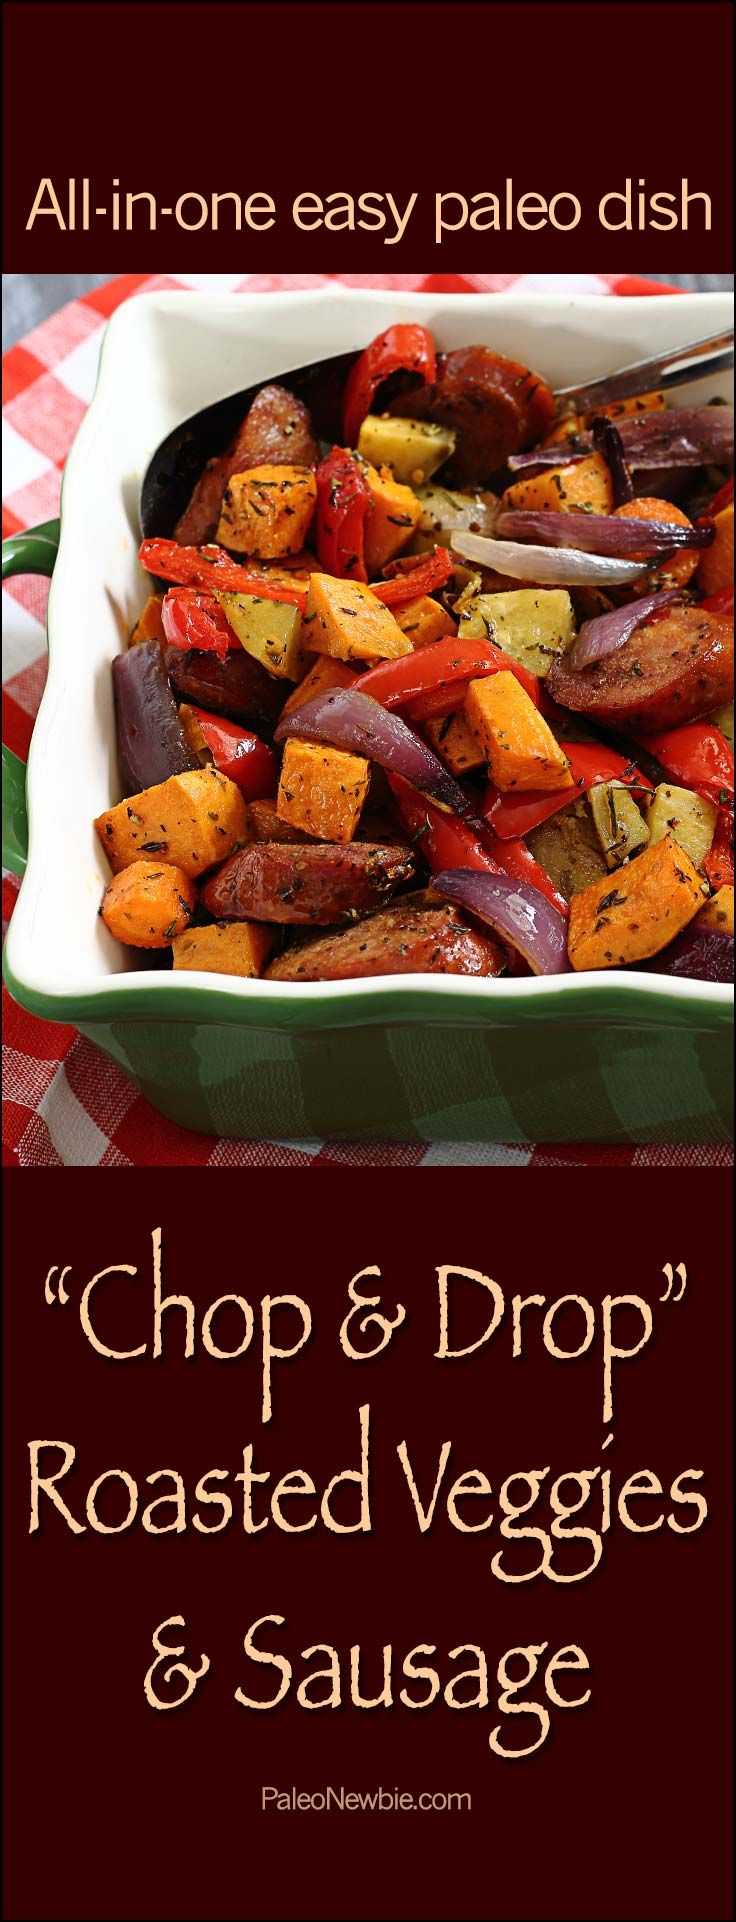 Really simple hot and hearty paleo & gluten free dish. Oven roasted veggies and your choice of pre-cooked sausage. All-in-one – bake it and you're done! #paleo #glutenfree